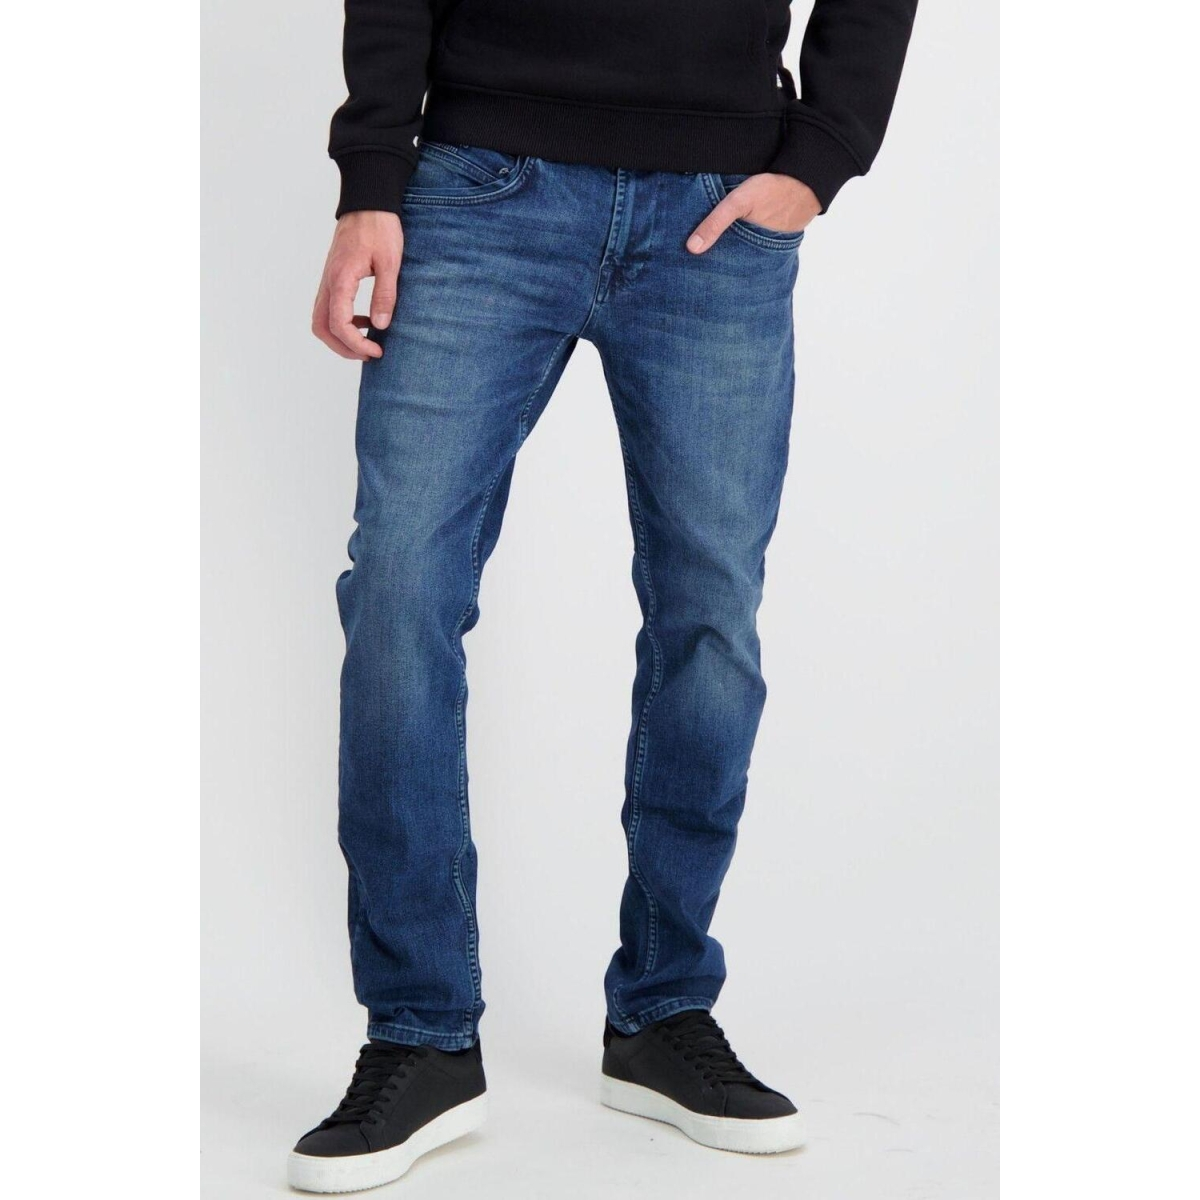 henlow regular fit 76738 cars jeans 03 dark used